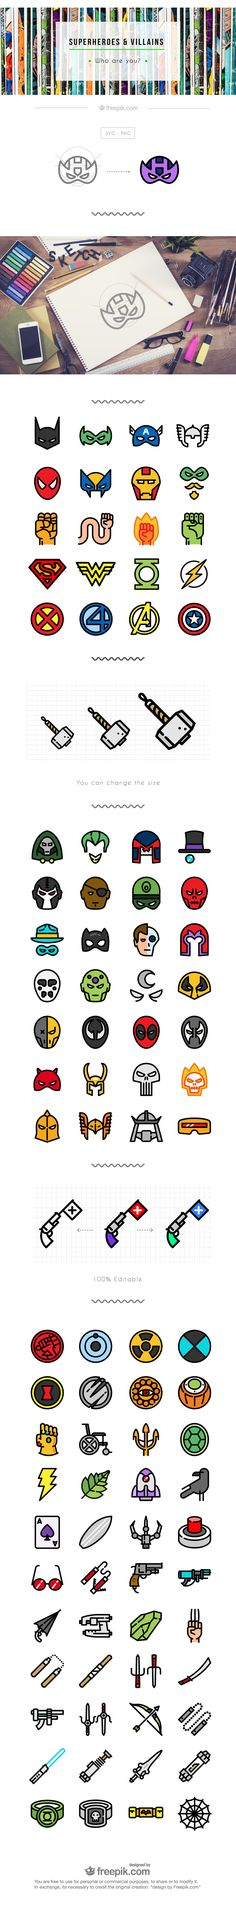 Freebie: The Flat Superheroes & Villains Icon Set